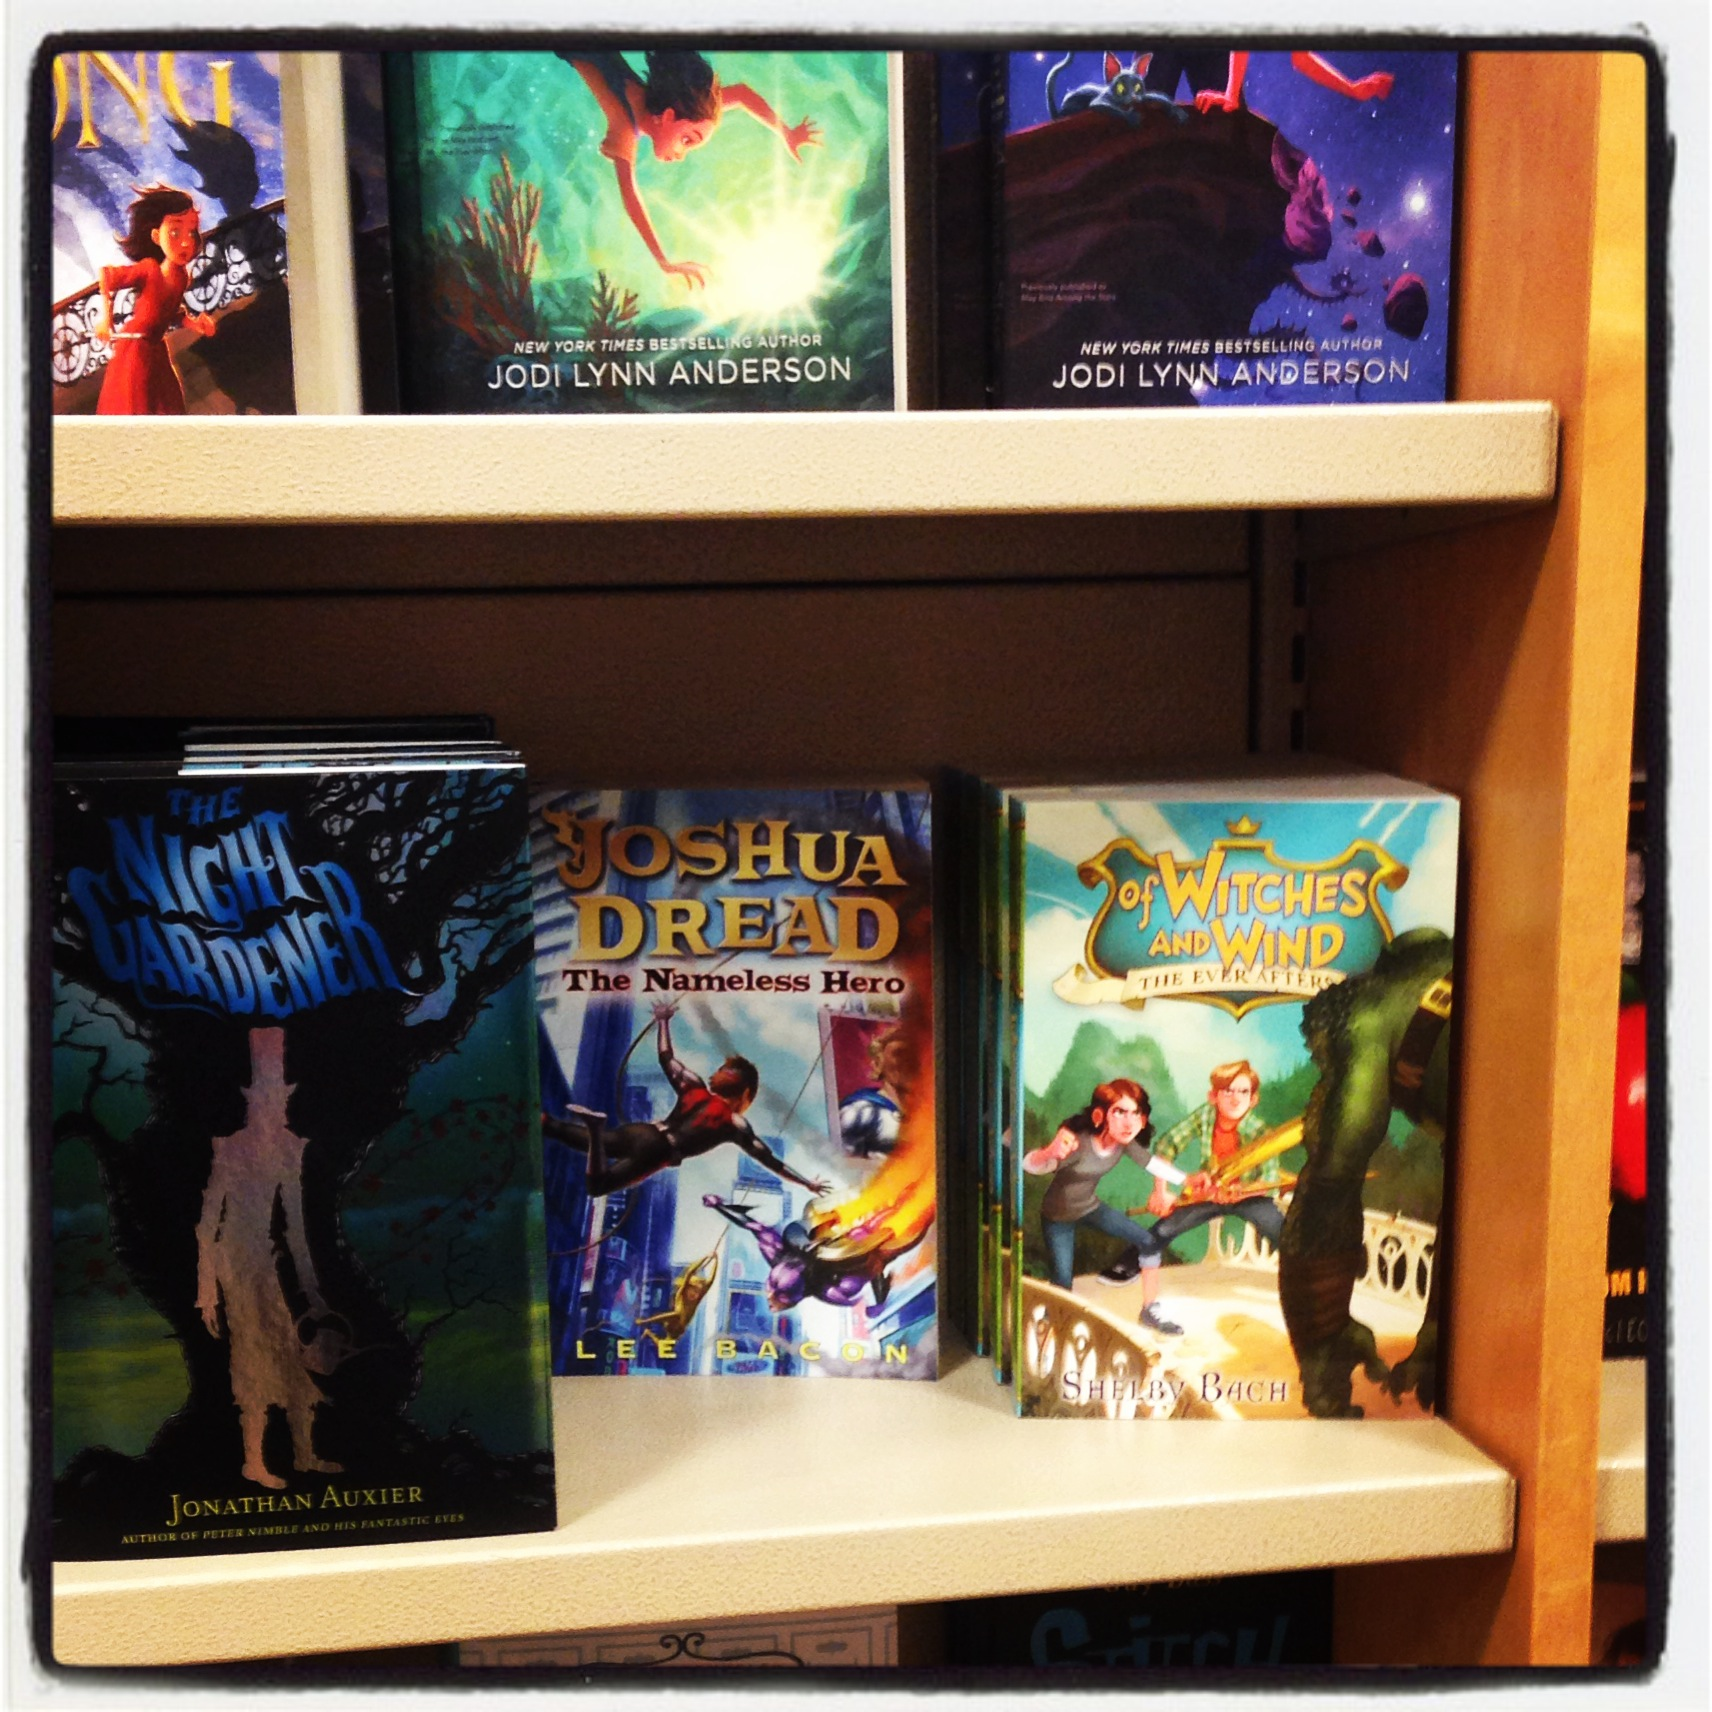 Of Witches & Wind Paperback And Kid Author Carnival